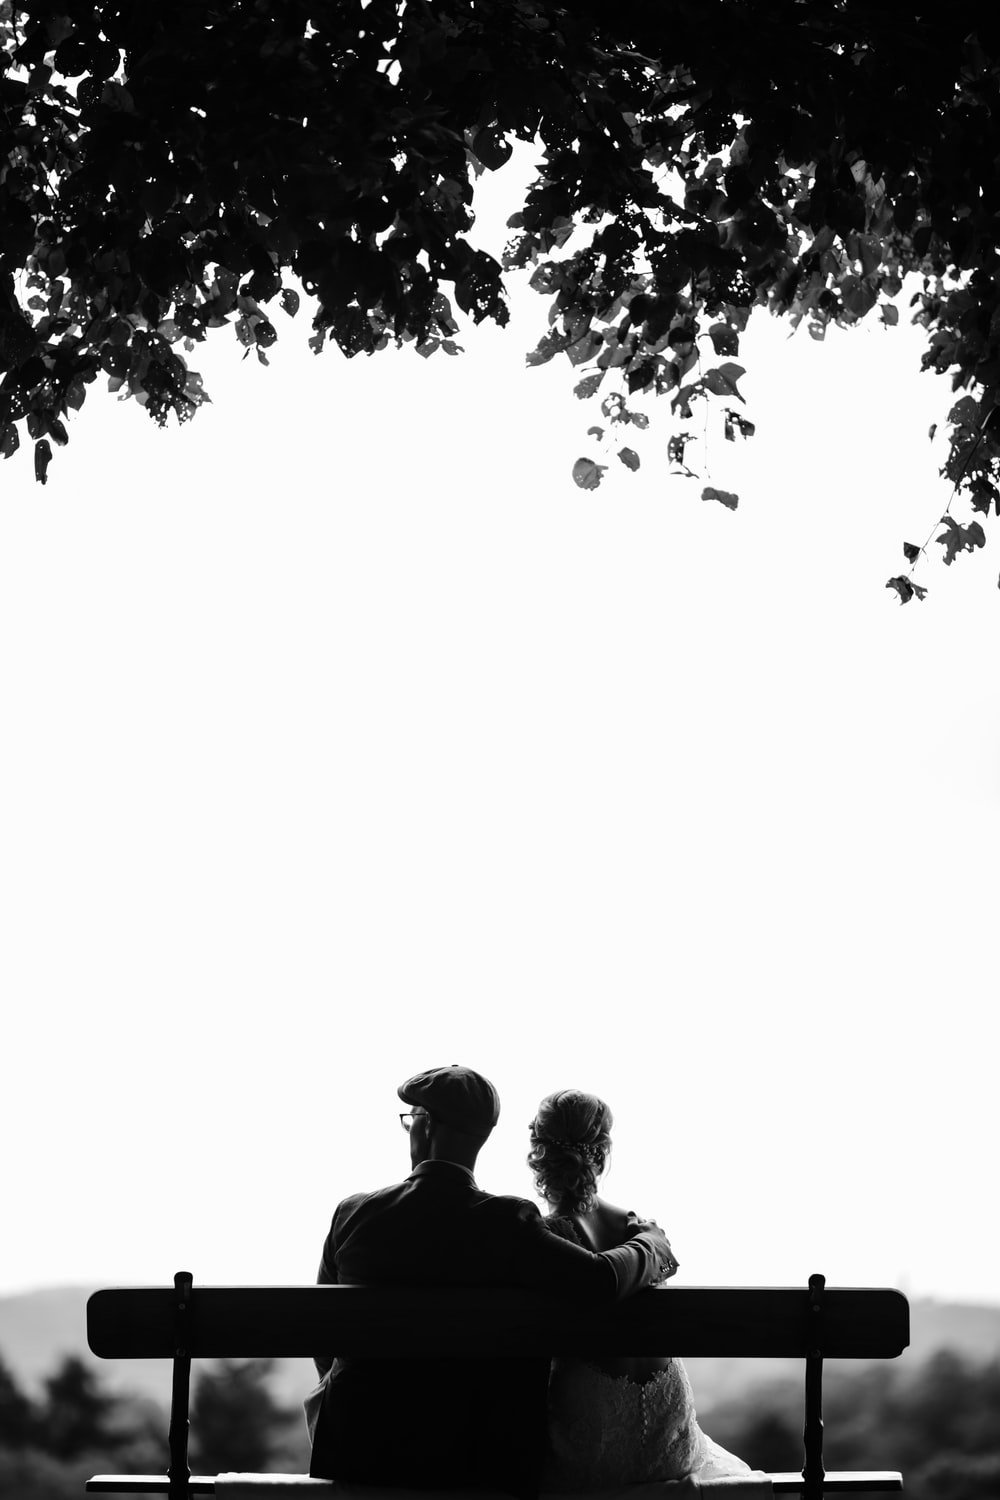 couple sitting on bench under tree grayscale photography